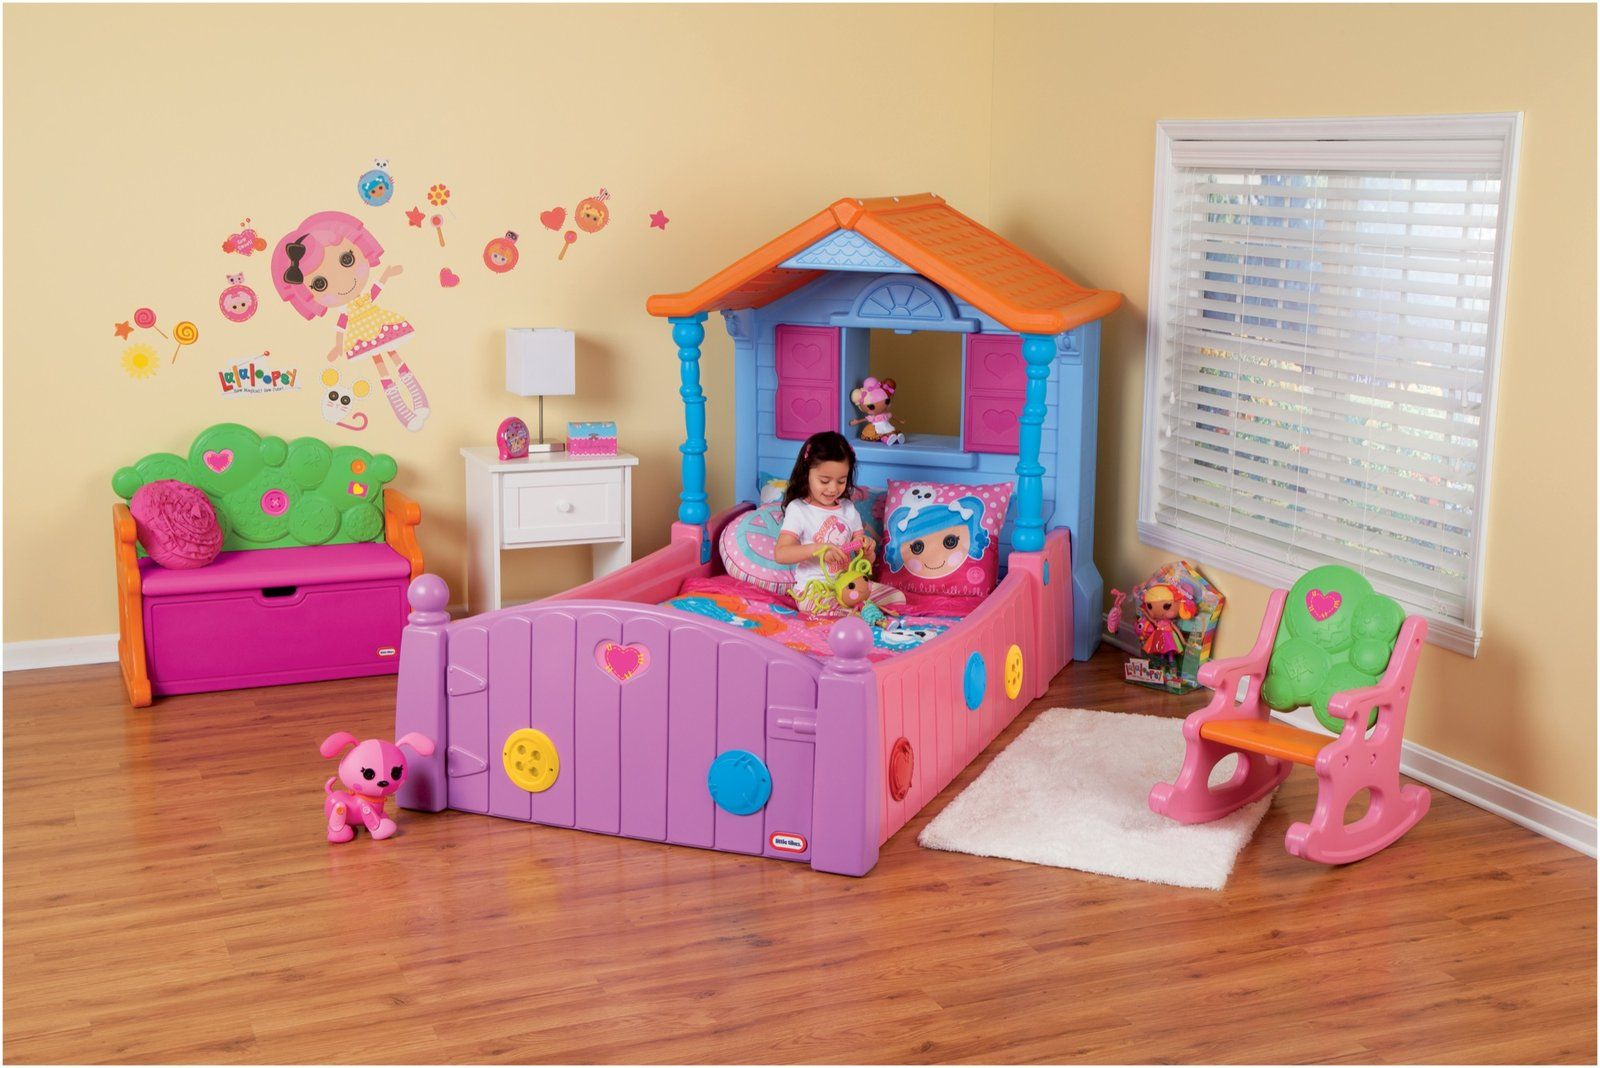 Little Tikes Lalaloopsy Twin Bed Kid, For her and Furniture